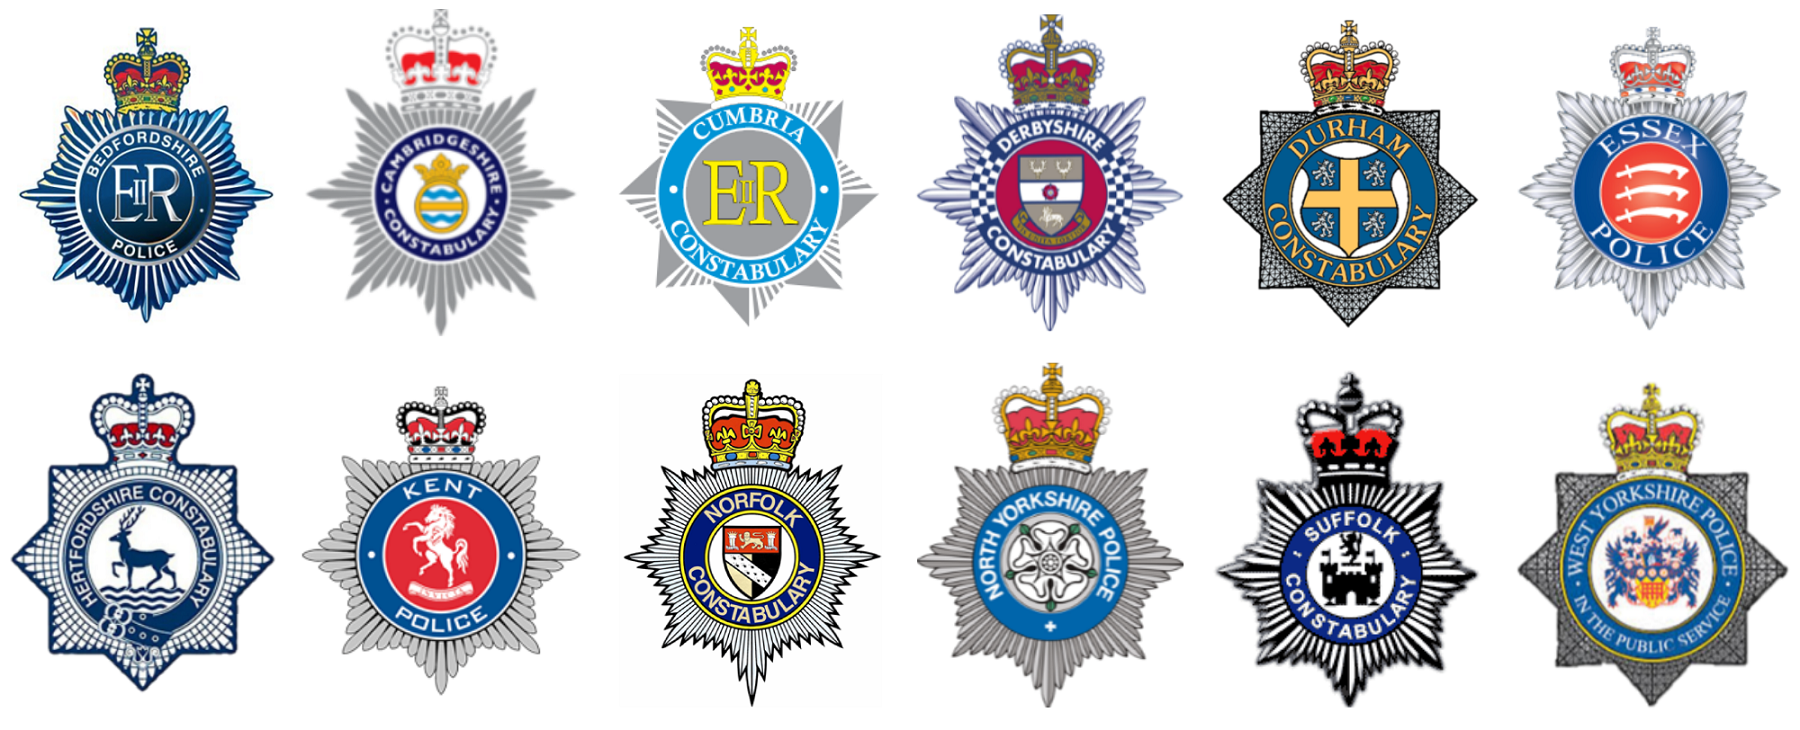 Picture of all 12 forces' logos